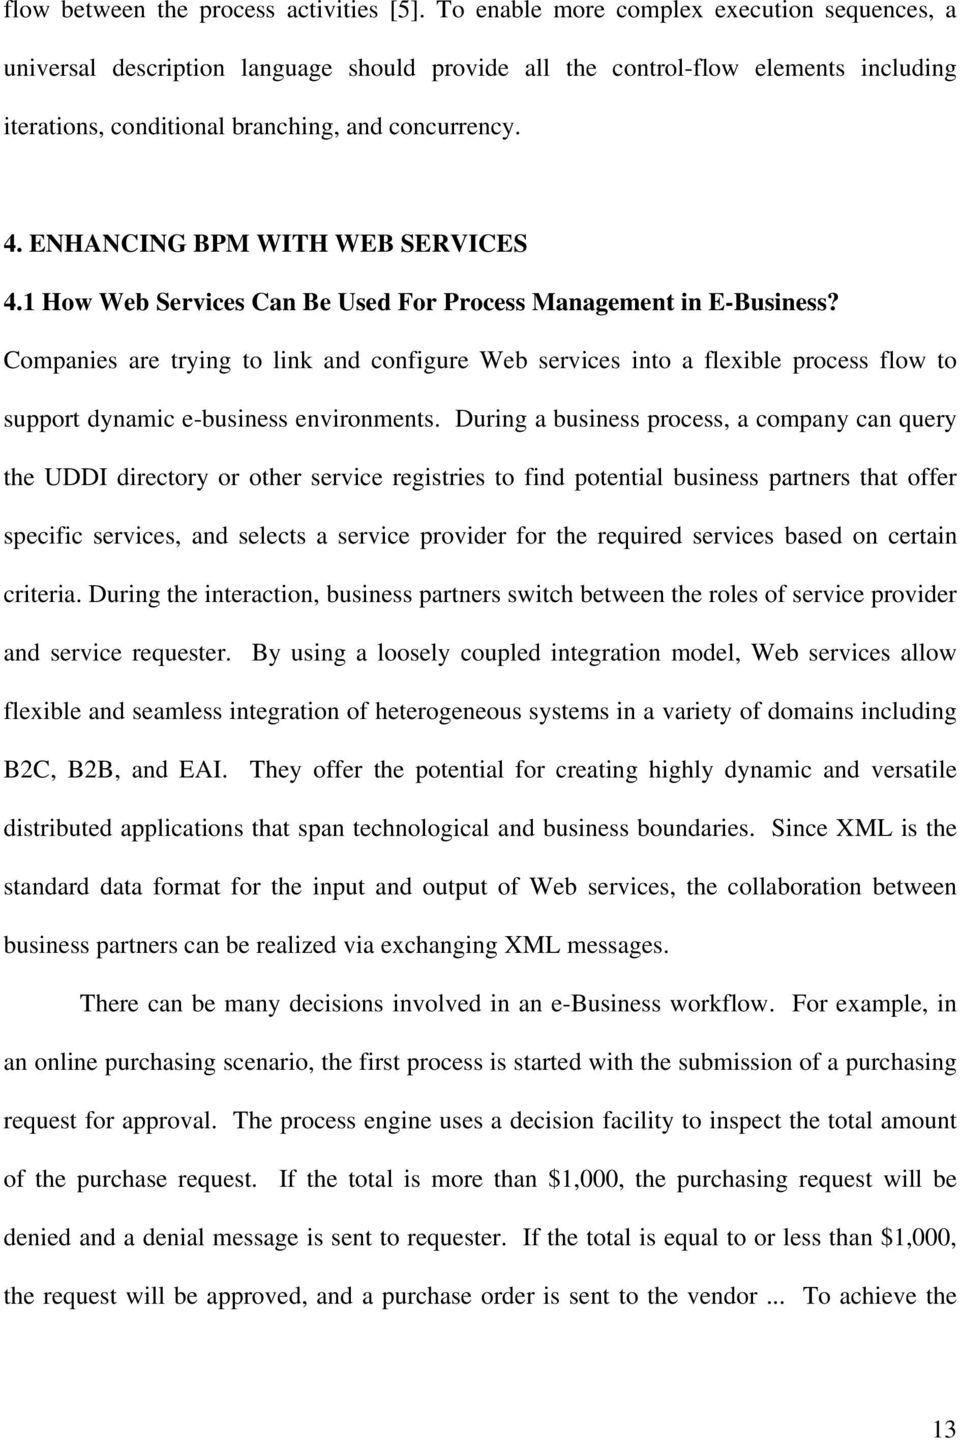 ENHANCING BPM WITH WEB SERVICES 4.1 How Web Services Can Be Used For Process Management in E-Business?